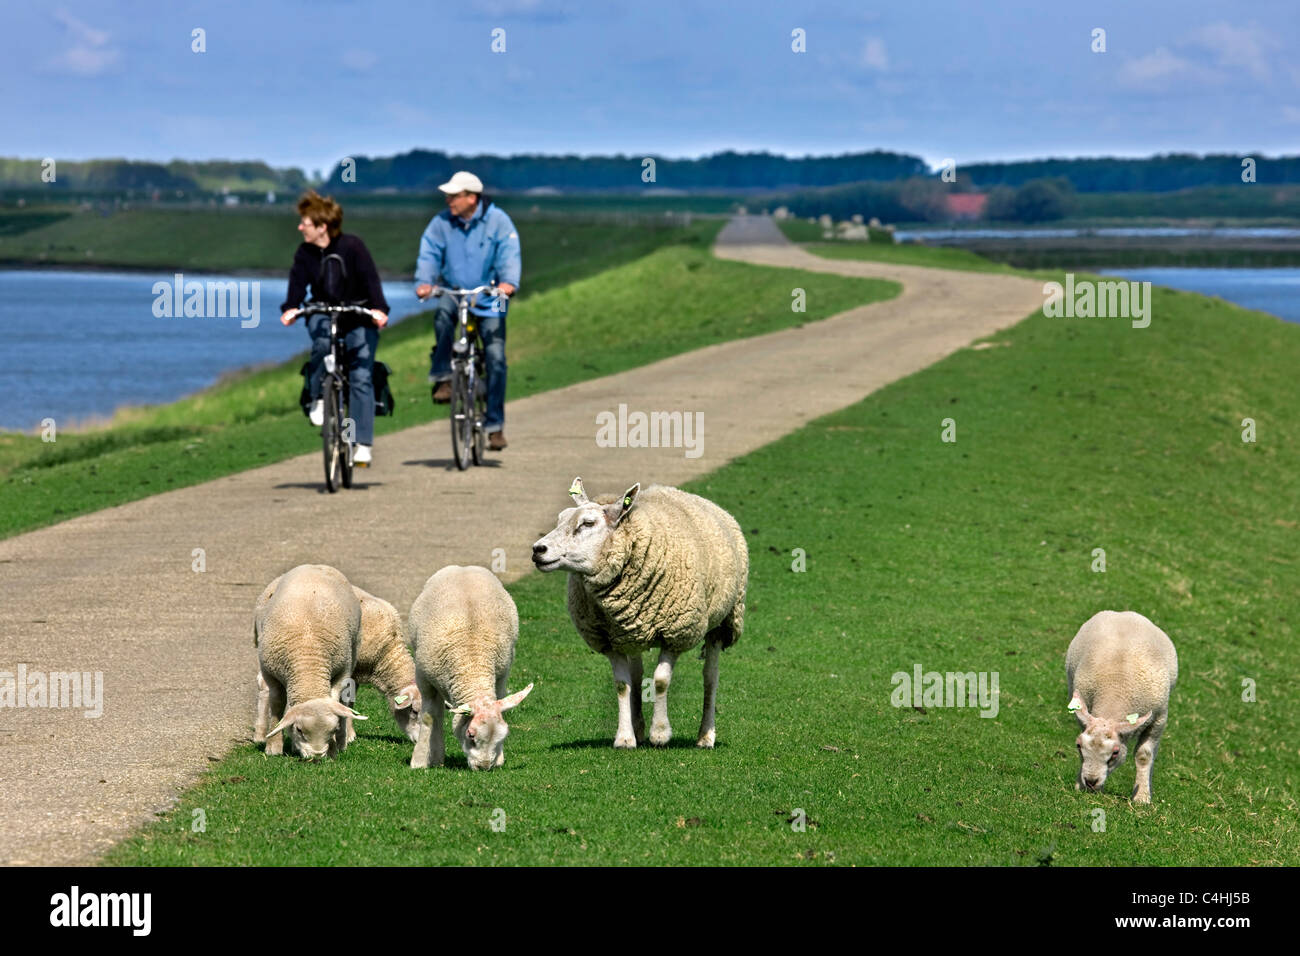 Sheep ewe (Ovis aries) with lambs and two cyclists riding their bicycles on dyke, The Netherlands - Stock Image